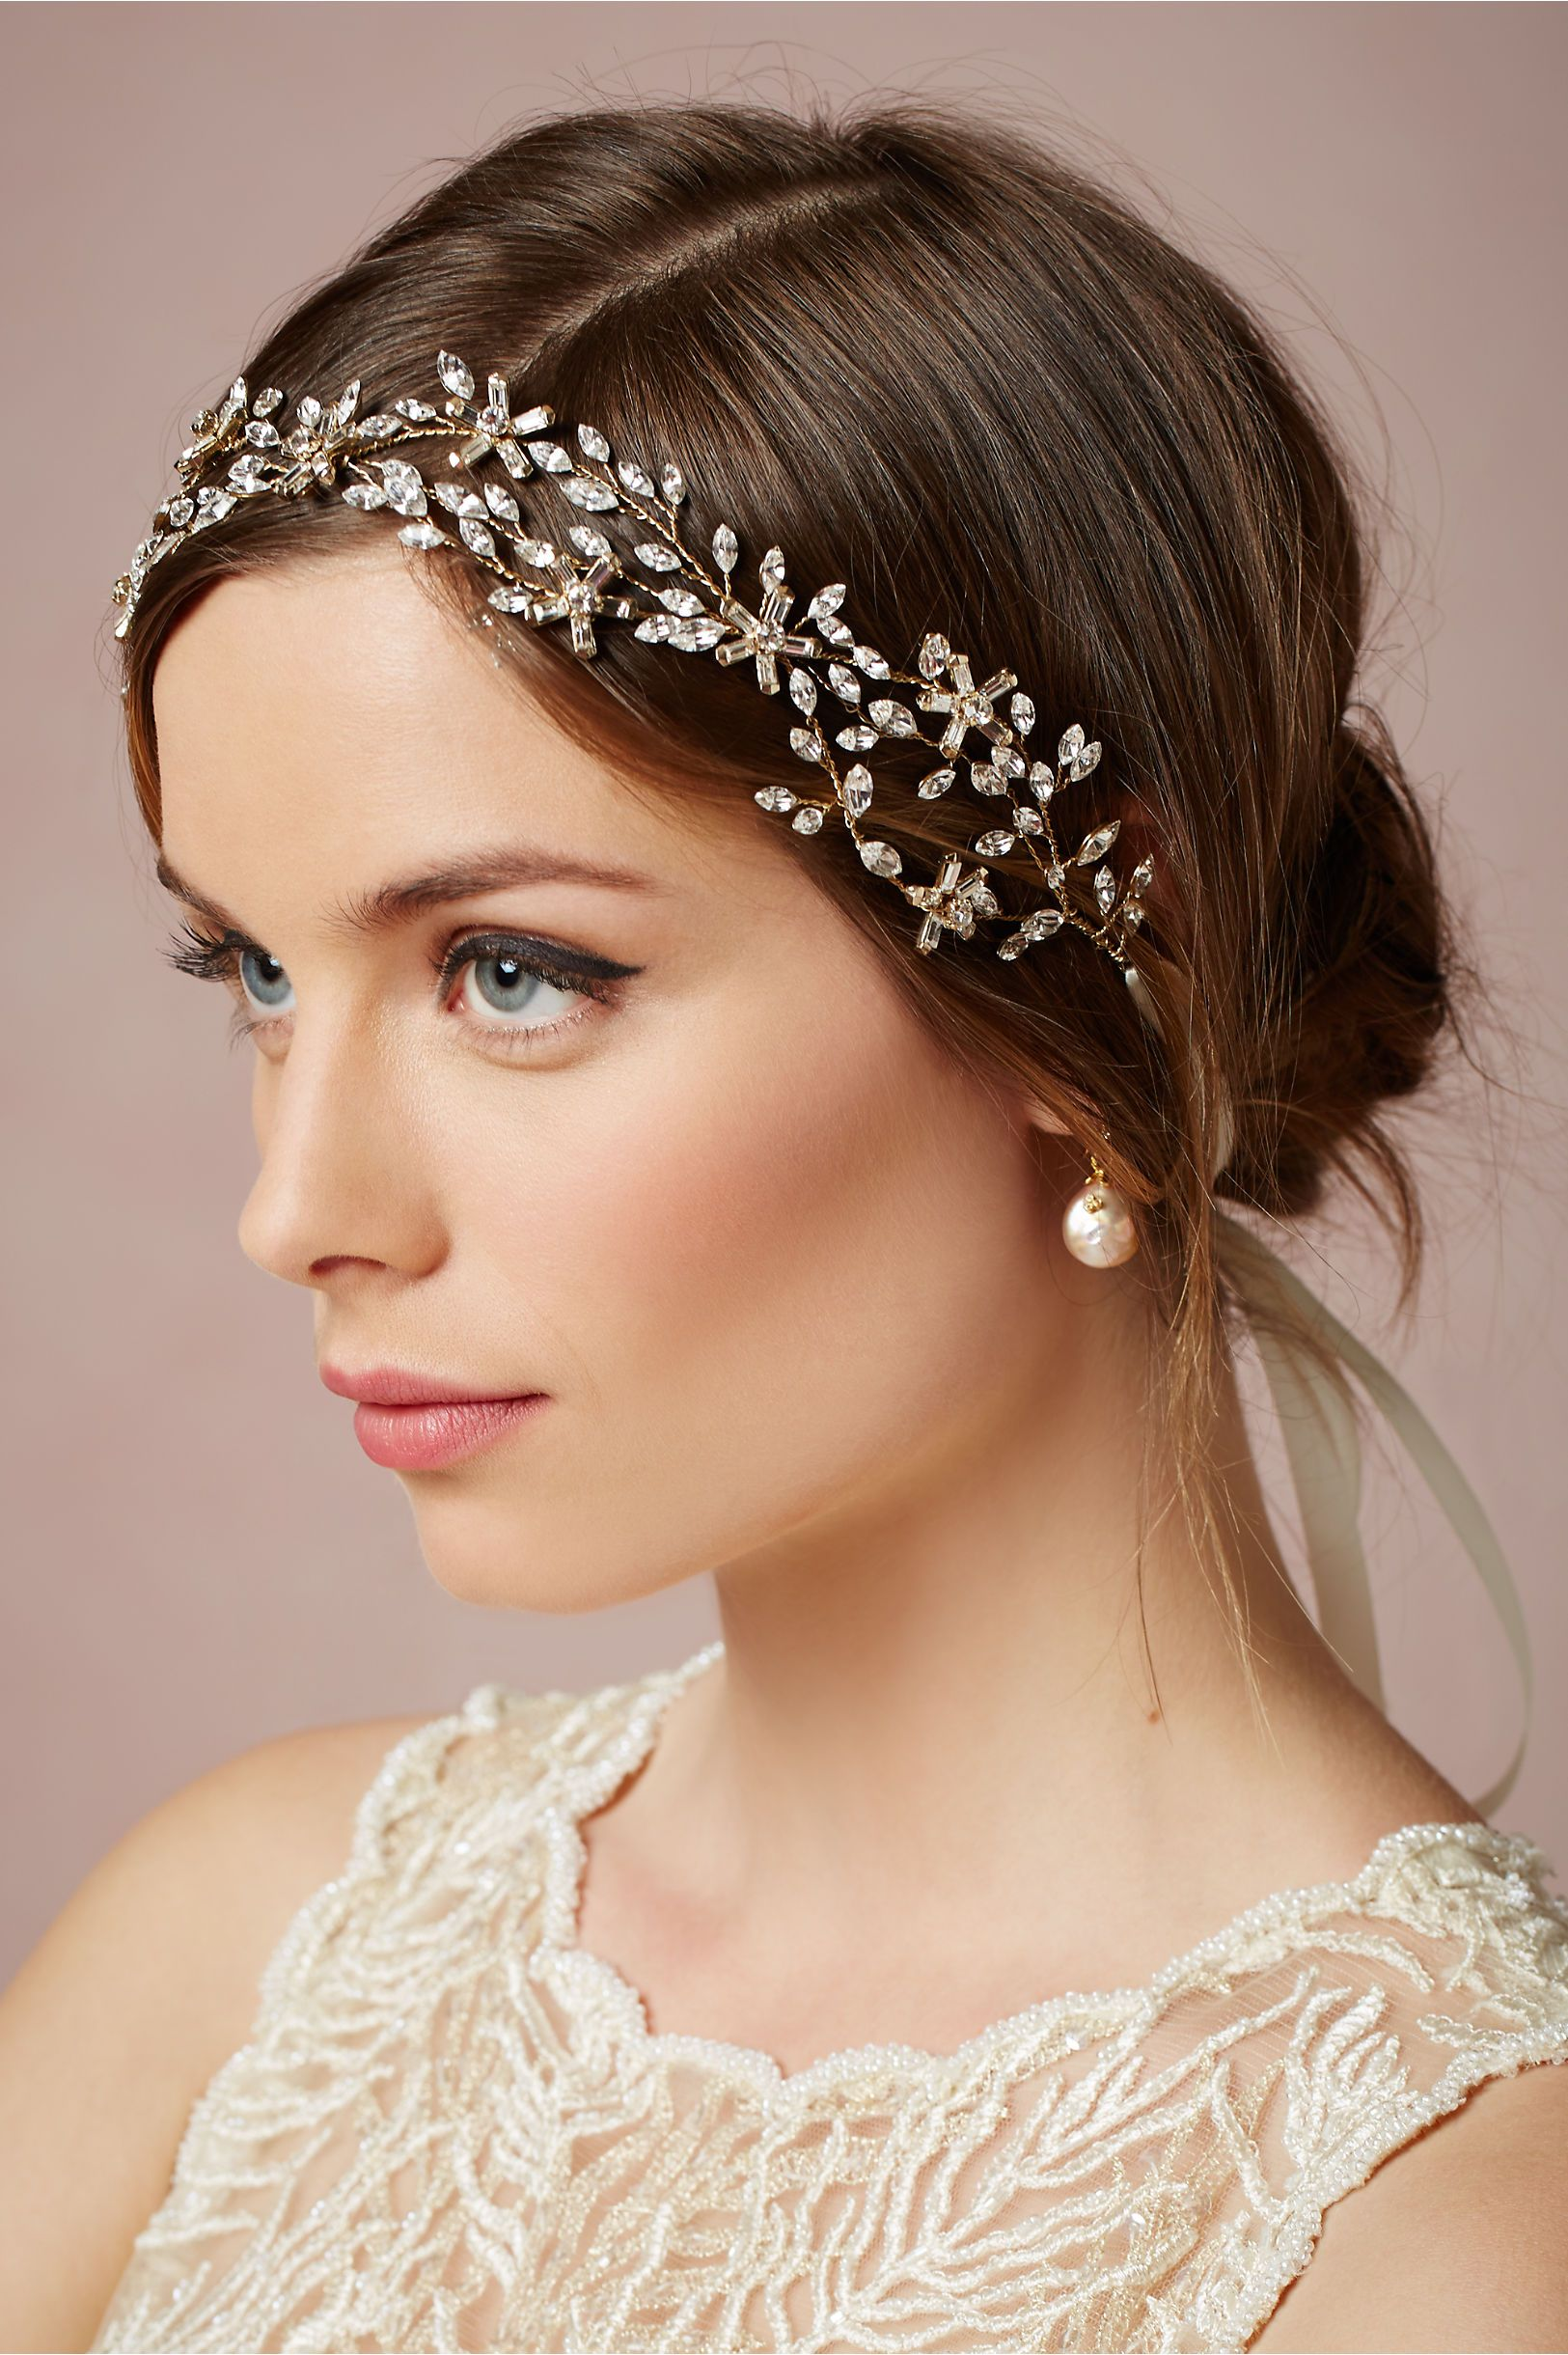 b434243dcfa Honeysuckle Headband from BHLDN. Love this one. It goes so well with the  leafy lace on the dress